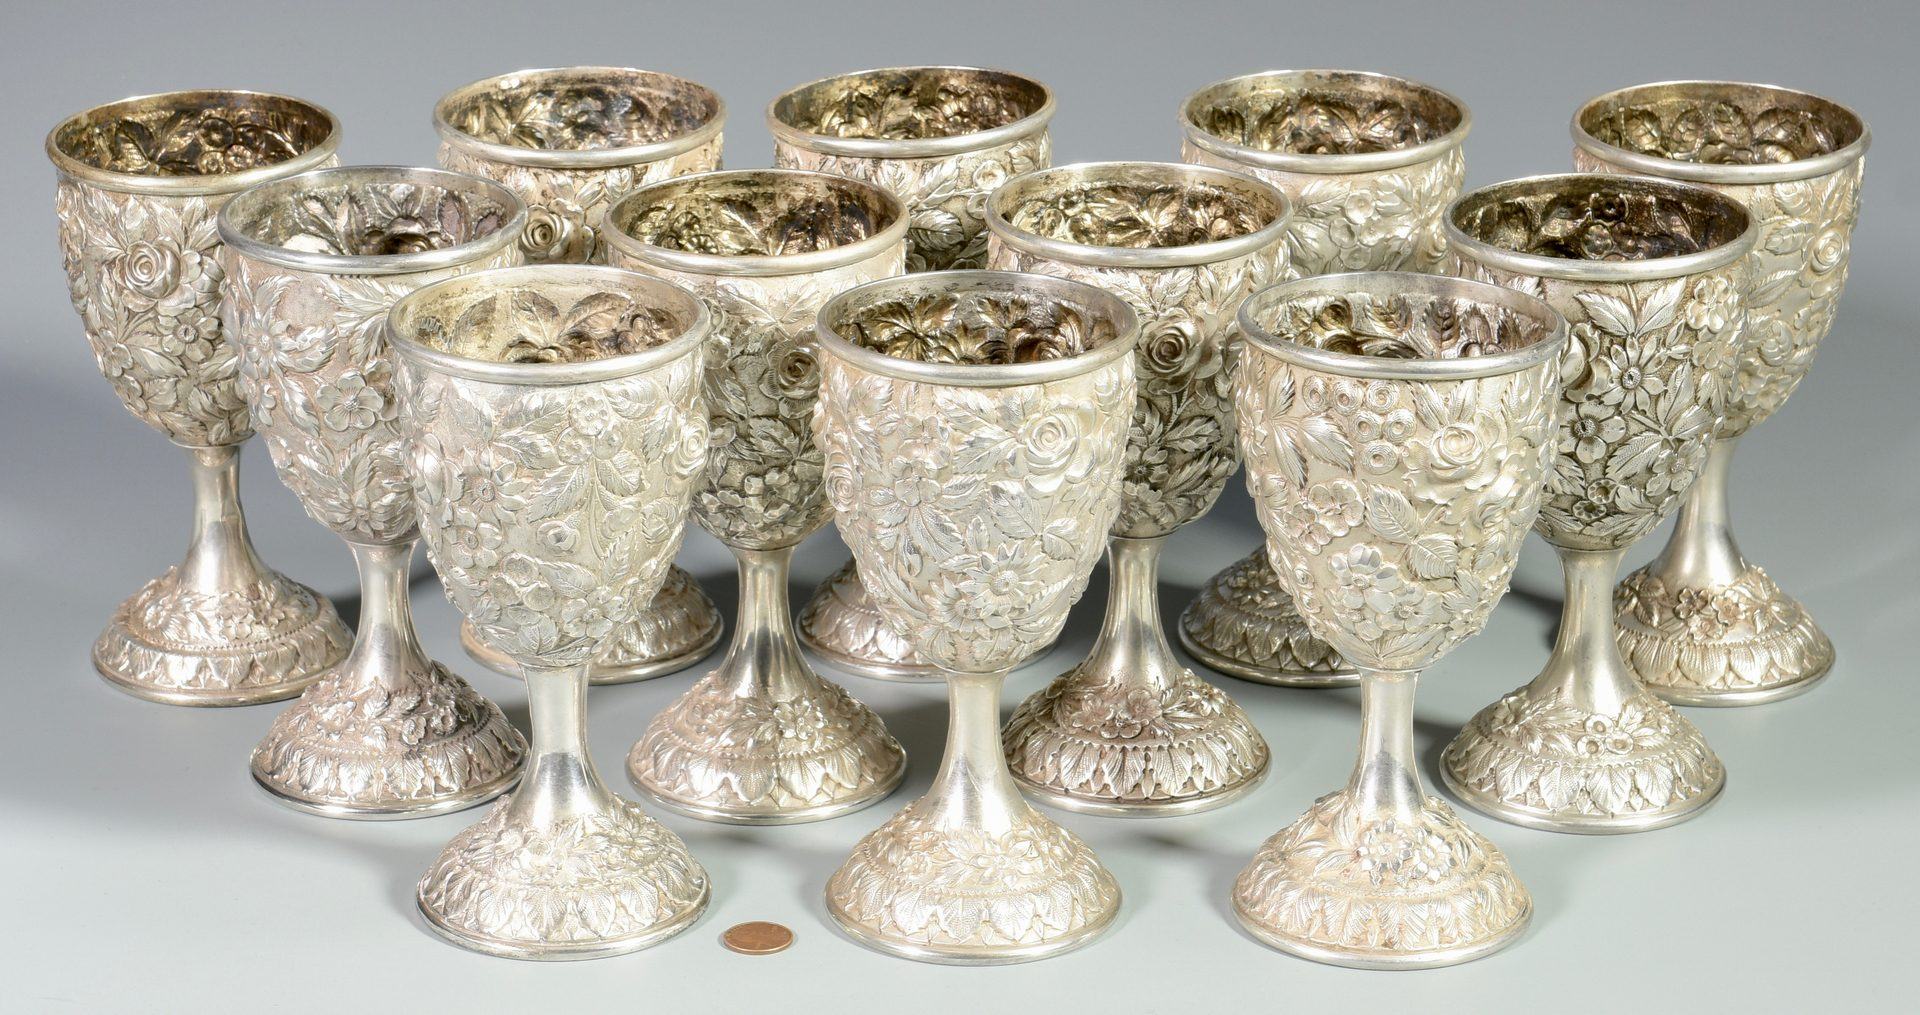 Lot 47: 12 Baltimore Sterling Silver Repousse Goblets